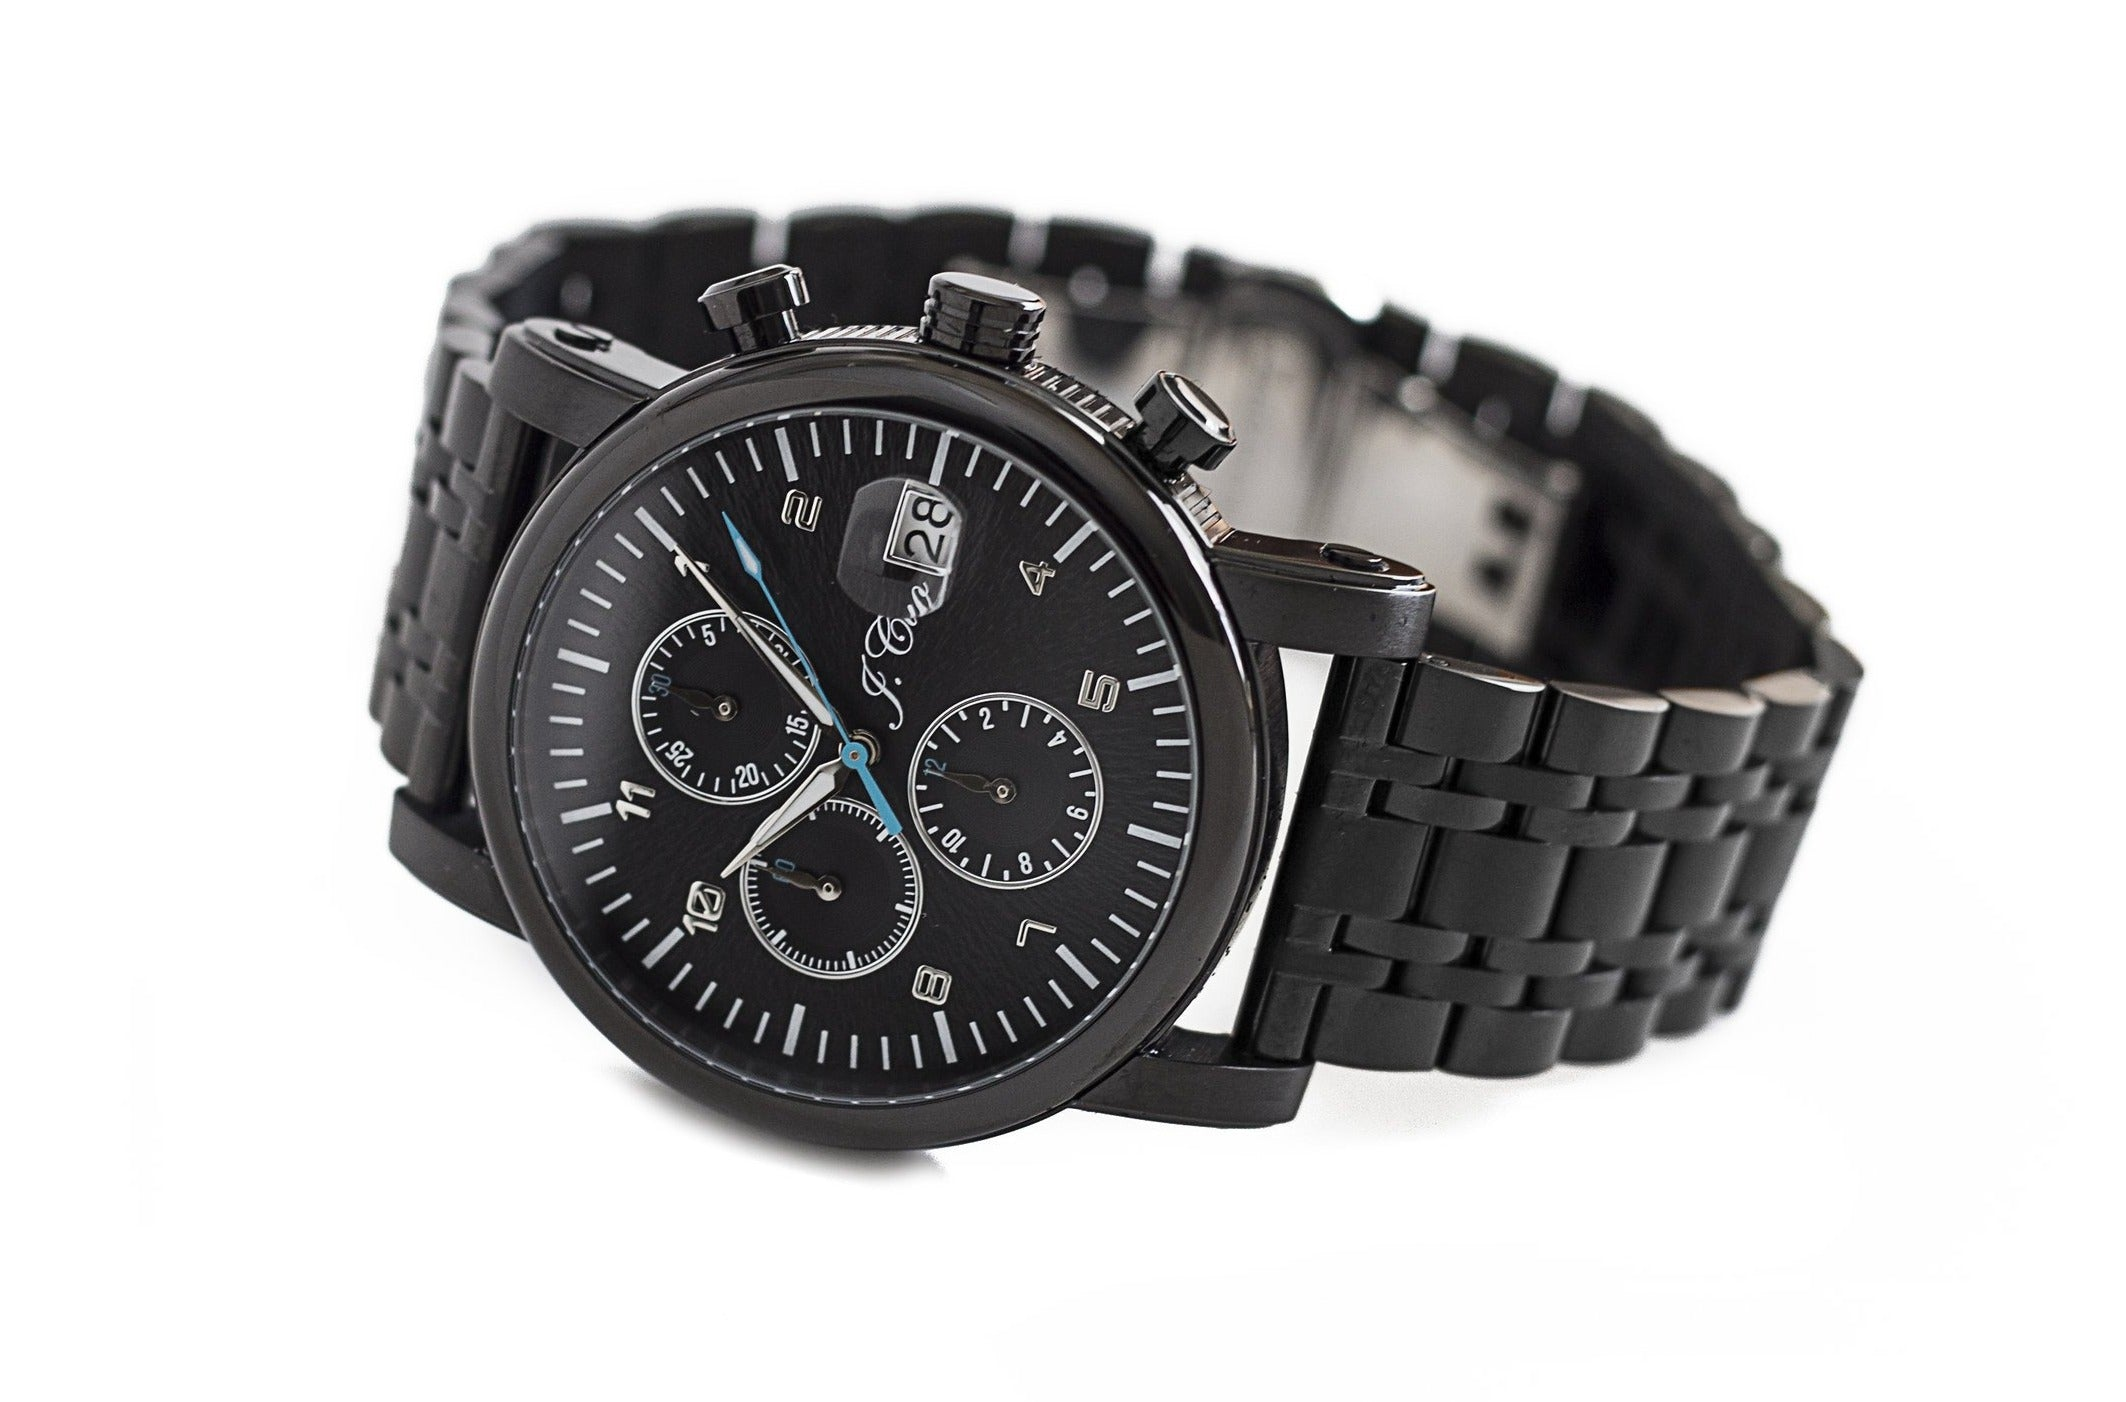 J.Ciro Panorama Chronograph Watch